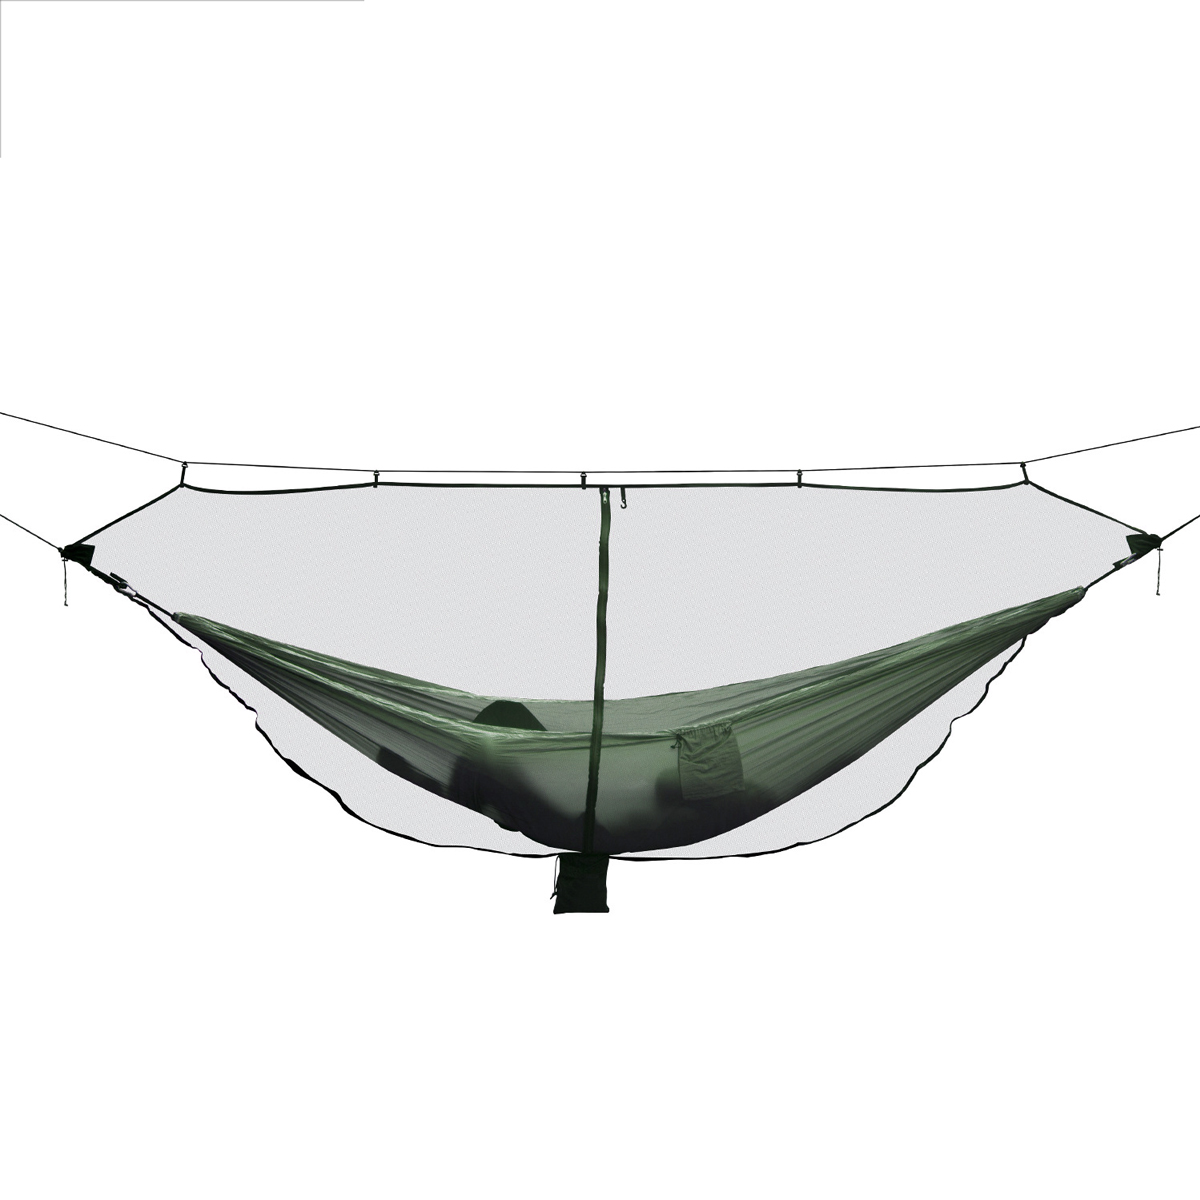 Benryhome Outdoor Portable Hammock Mosquito Insect